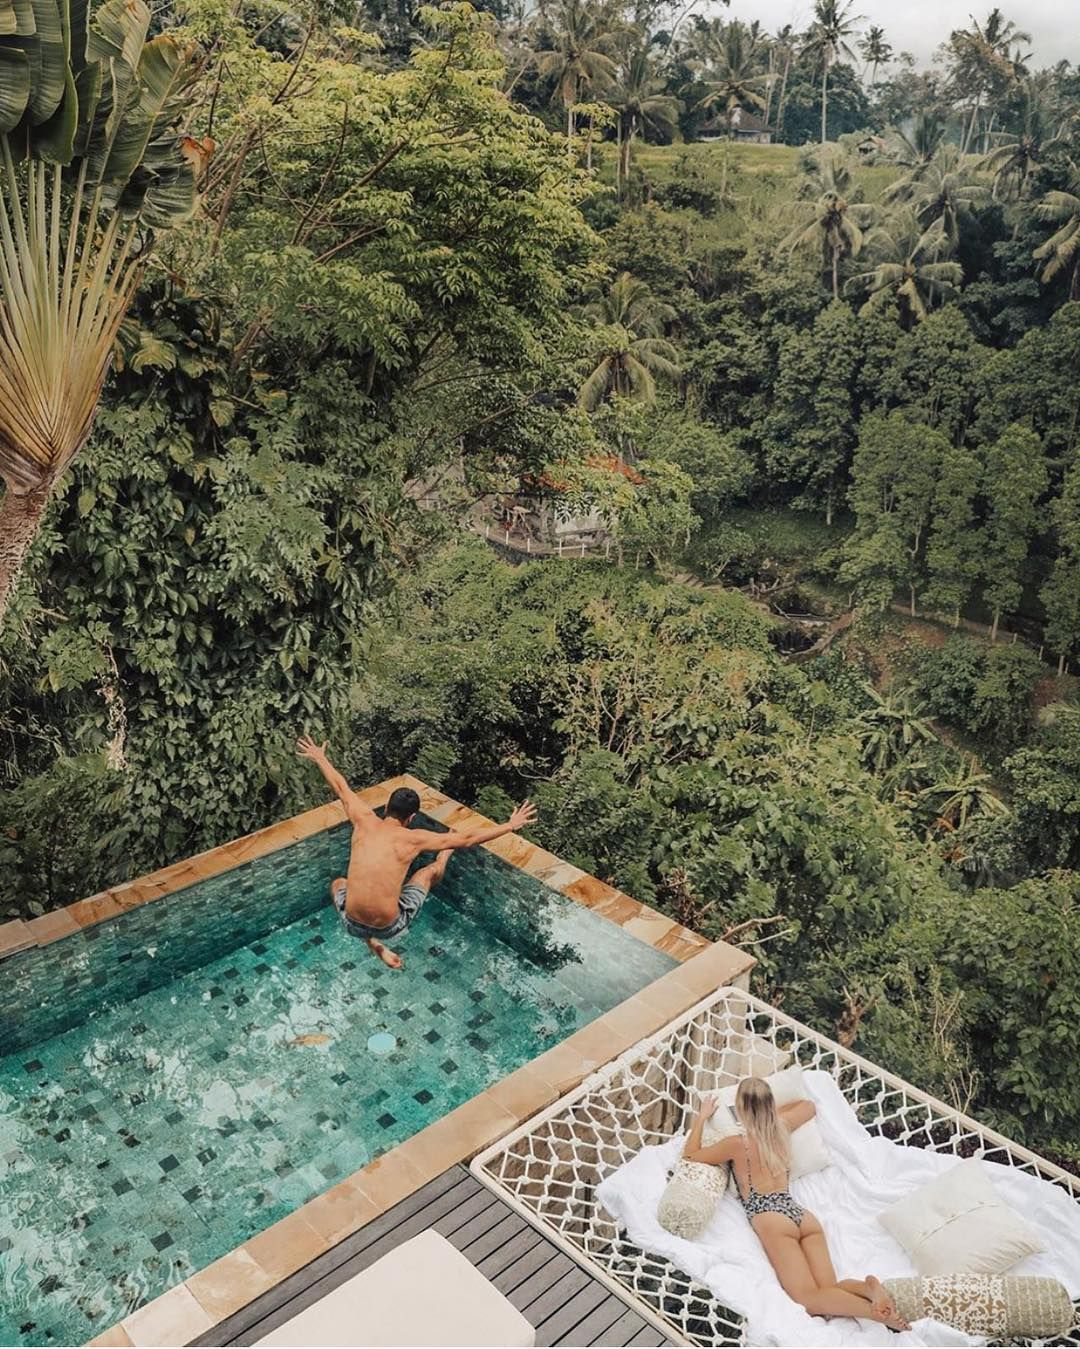 Best Airbnb On Instagram Villa Cella Bella Jump Into The Weekend At This Awesome Airbnb Bali Indonesia Photo By Ubud Villas Bali Resort Bali Vacation